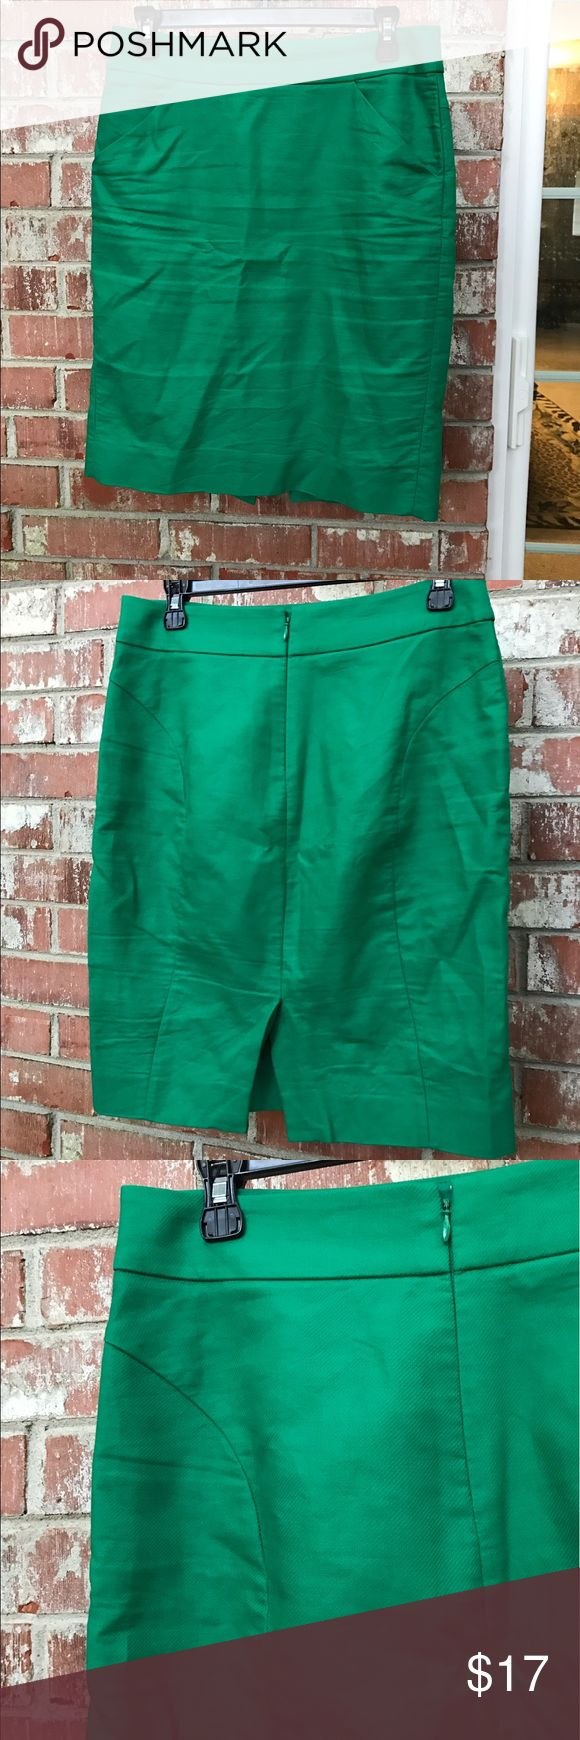 """J. Crew Green Pencil Skirt Factory. Kelly Green. The Pencil Skirt. Kelly Green. Runs bigger. 2 pockets. 15"""" waist, 22"""" long. In excellent condition. J. Crew Skirts Pencil"""